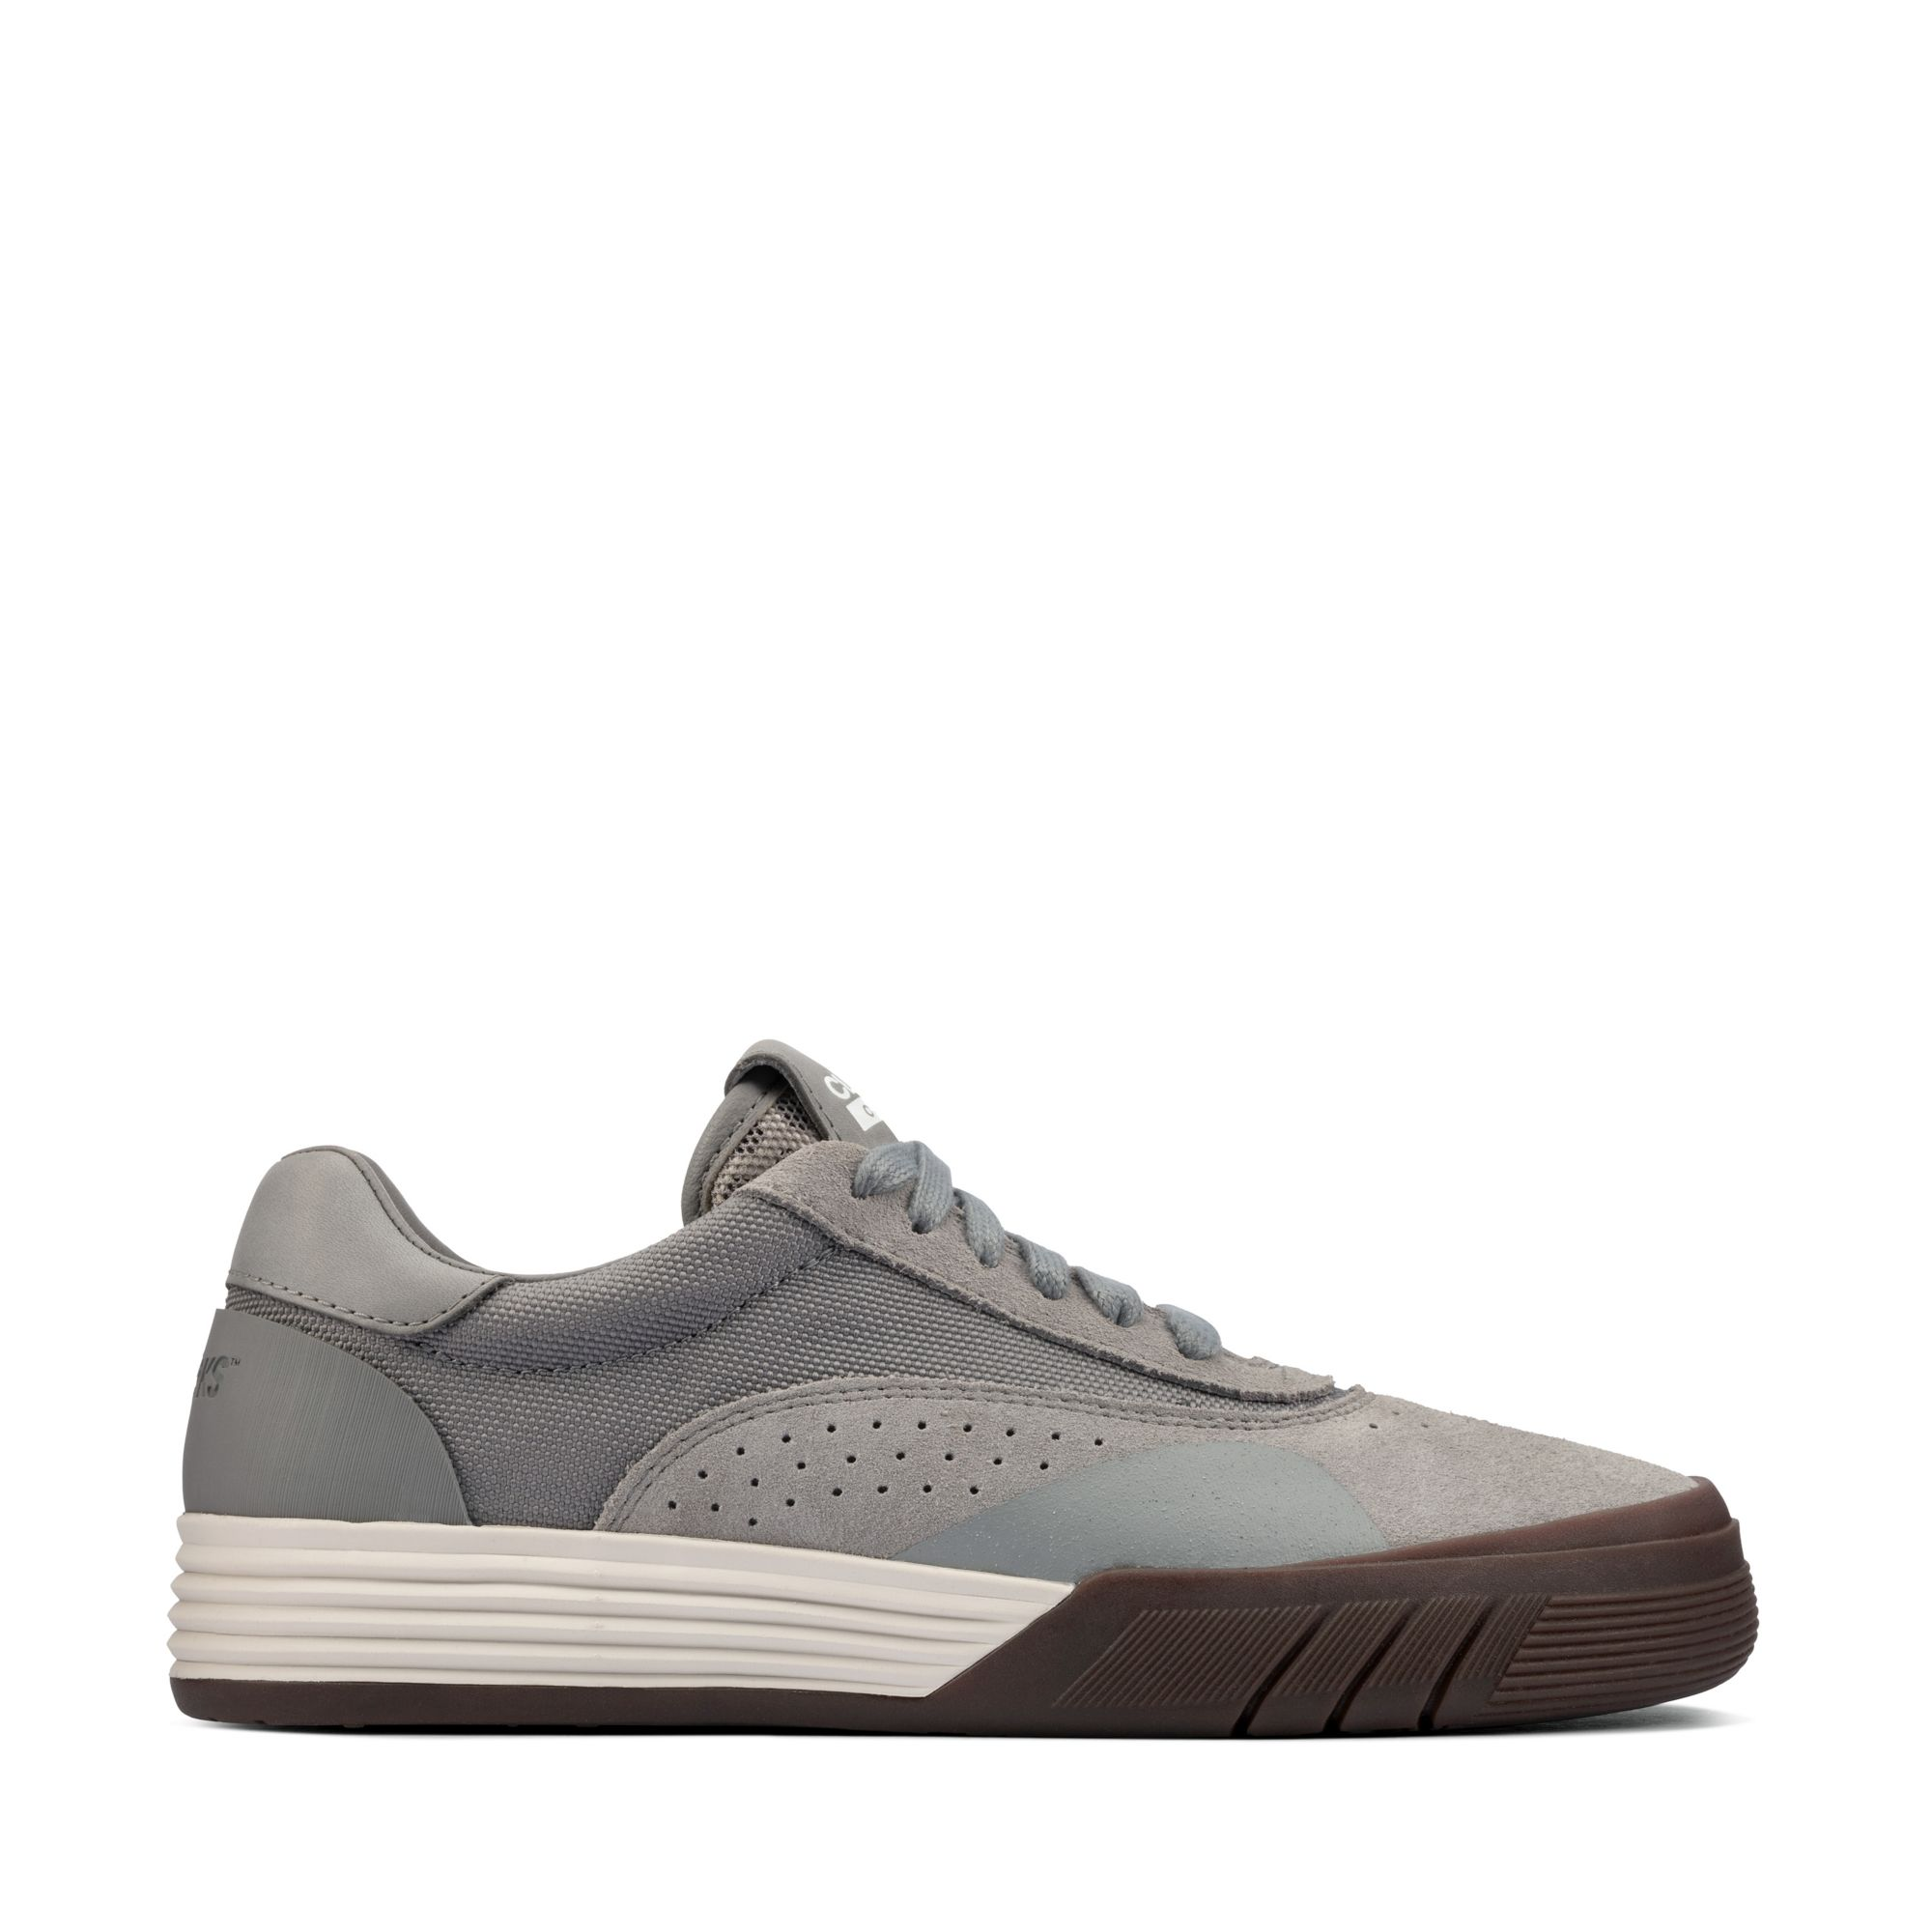 Clarks Cica Youth – Suede